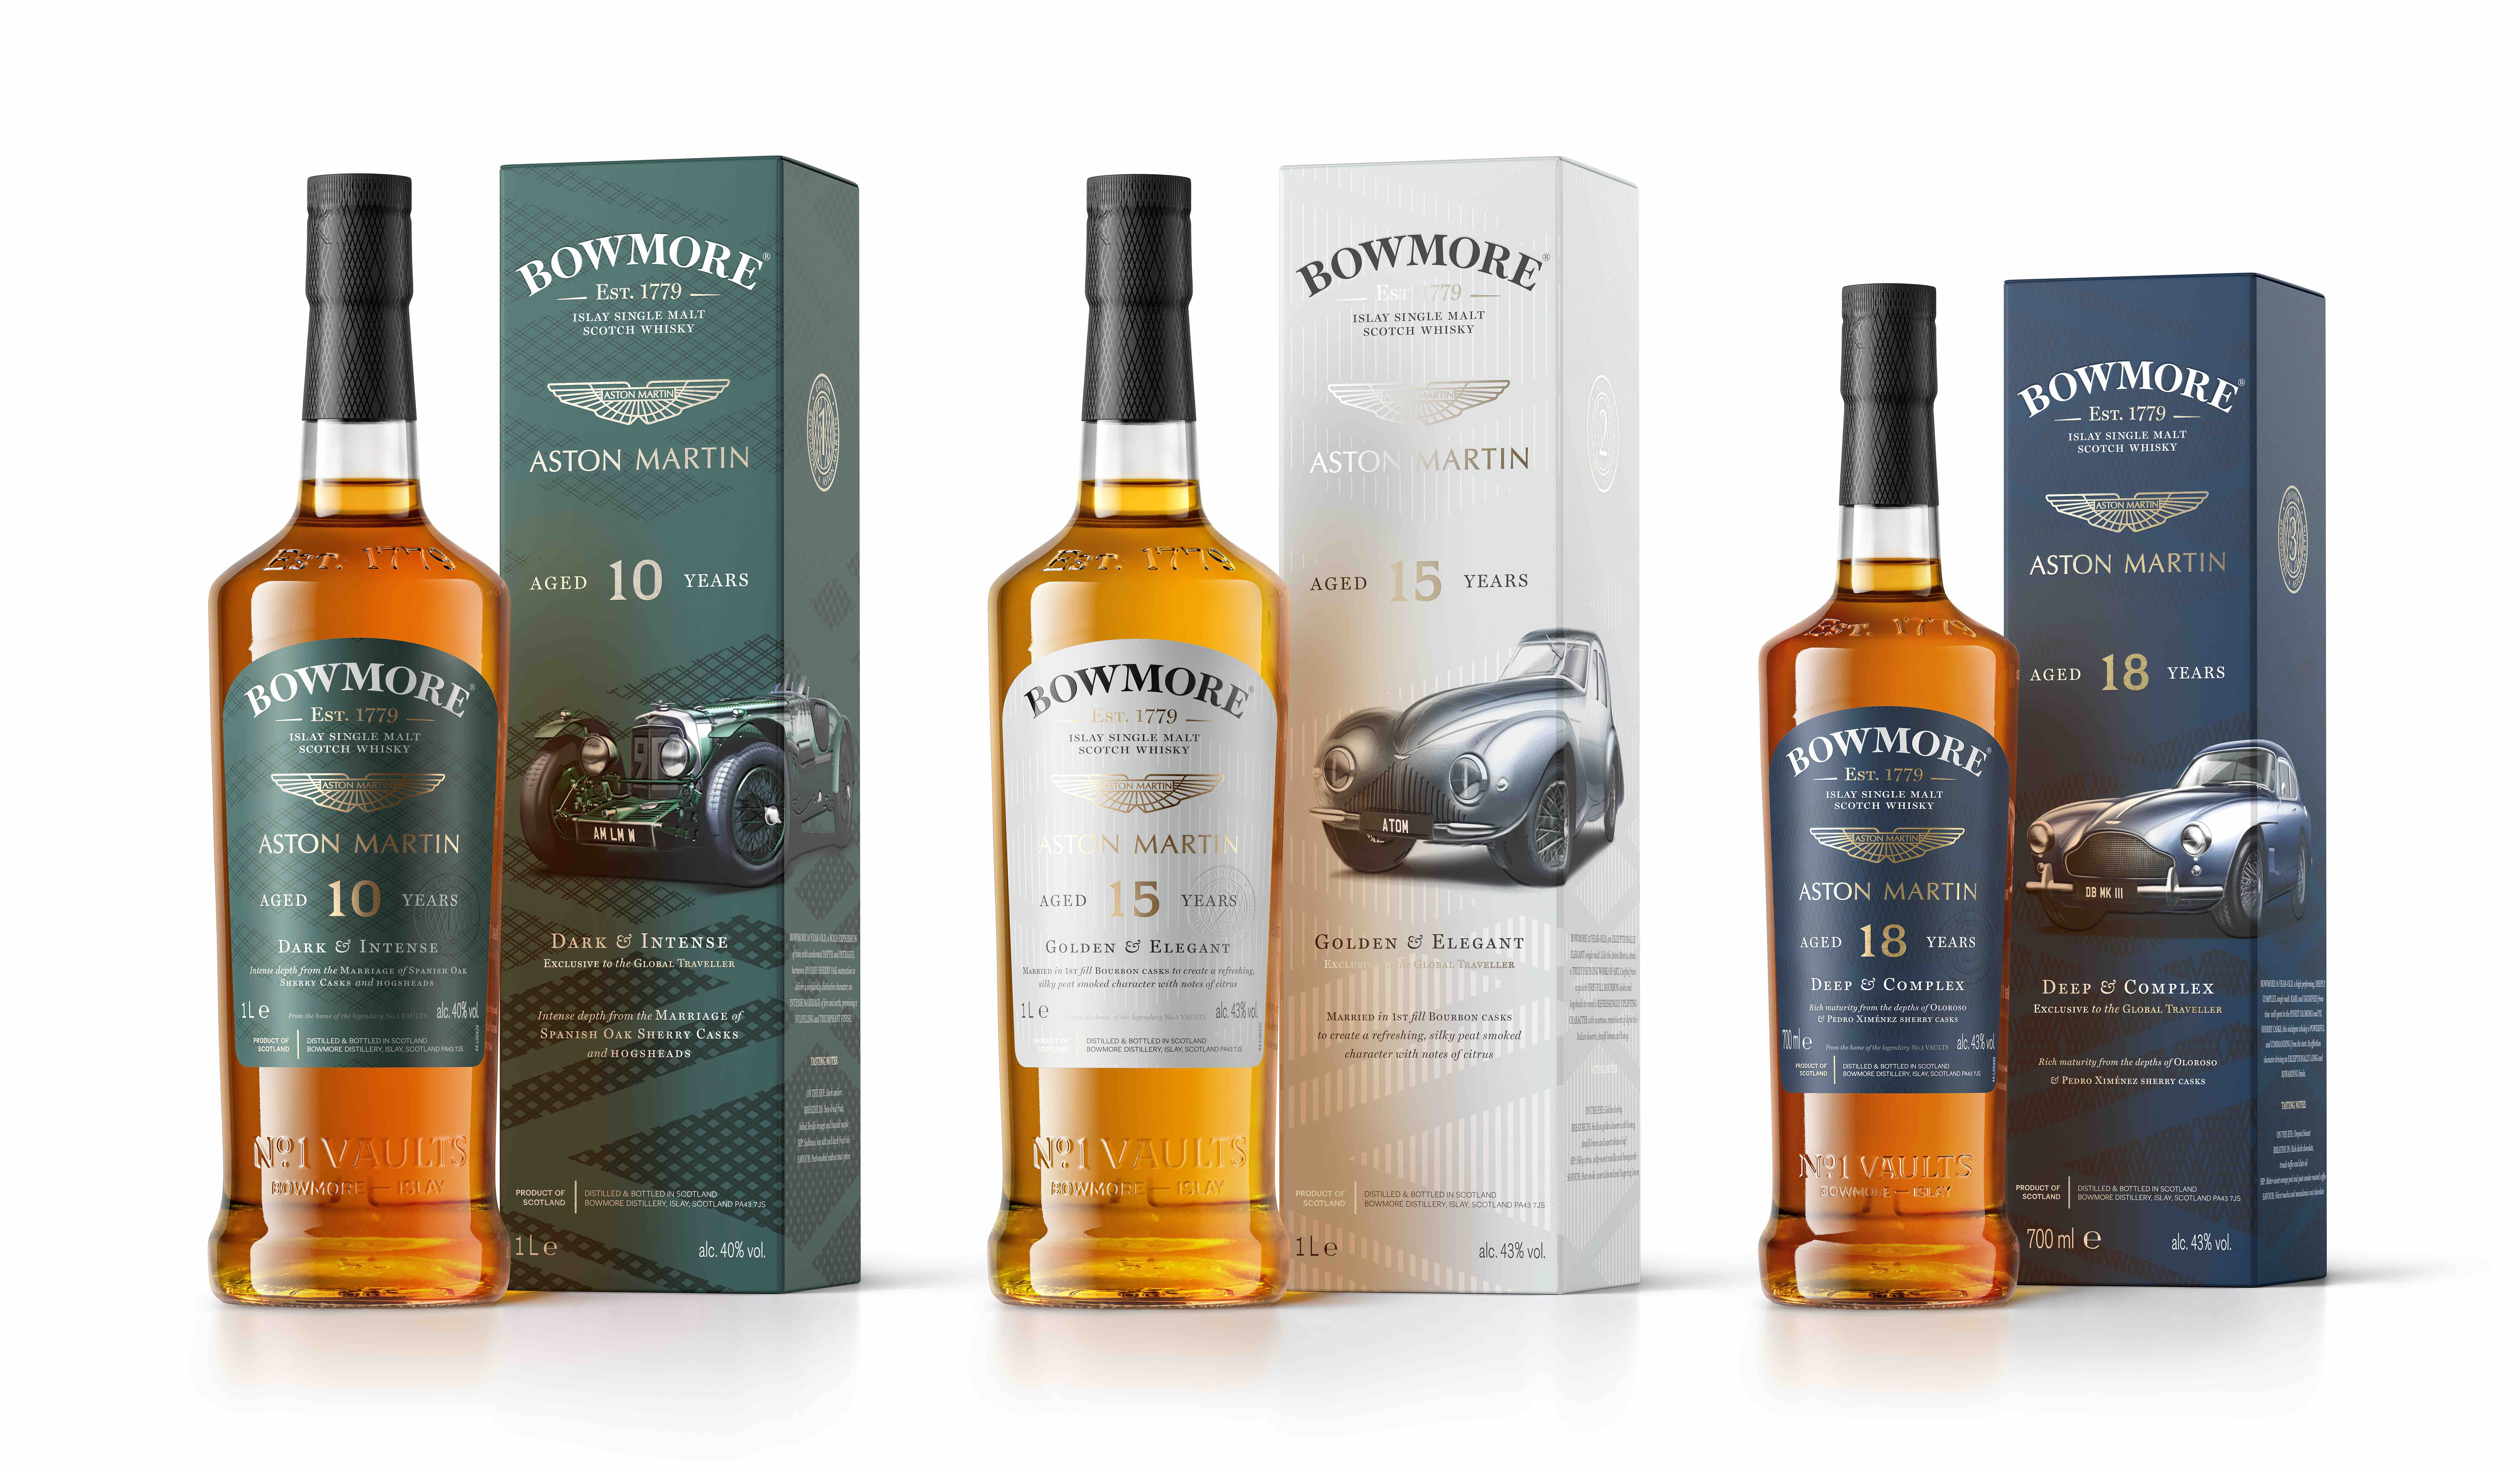 Bowmore launches Designed by Aston Martin a limited-edition, travel retail exclusive collection Featured Image